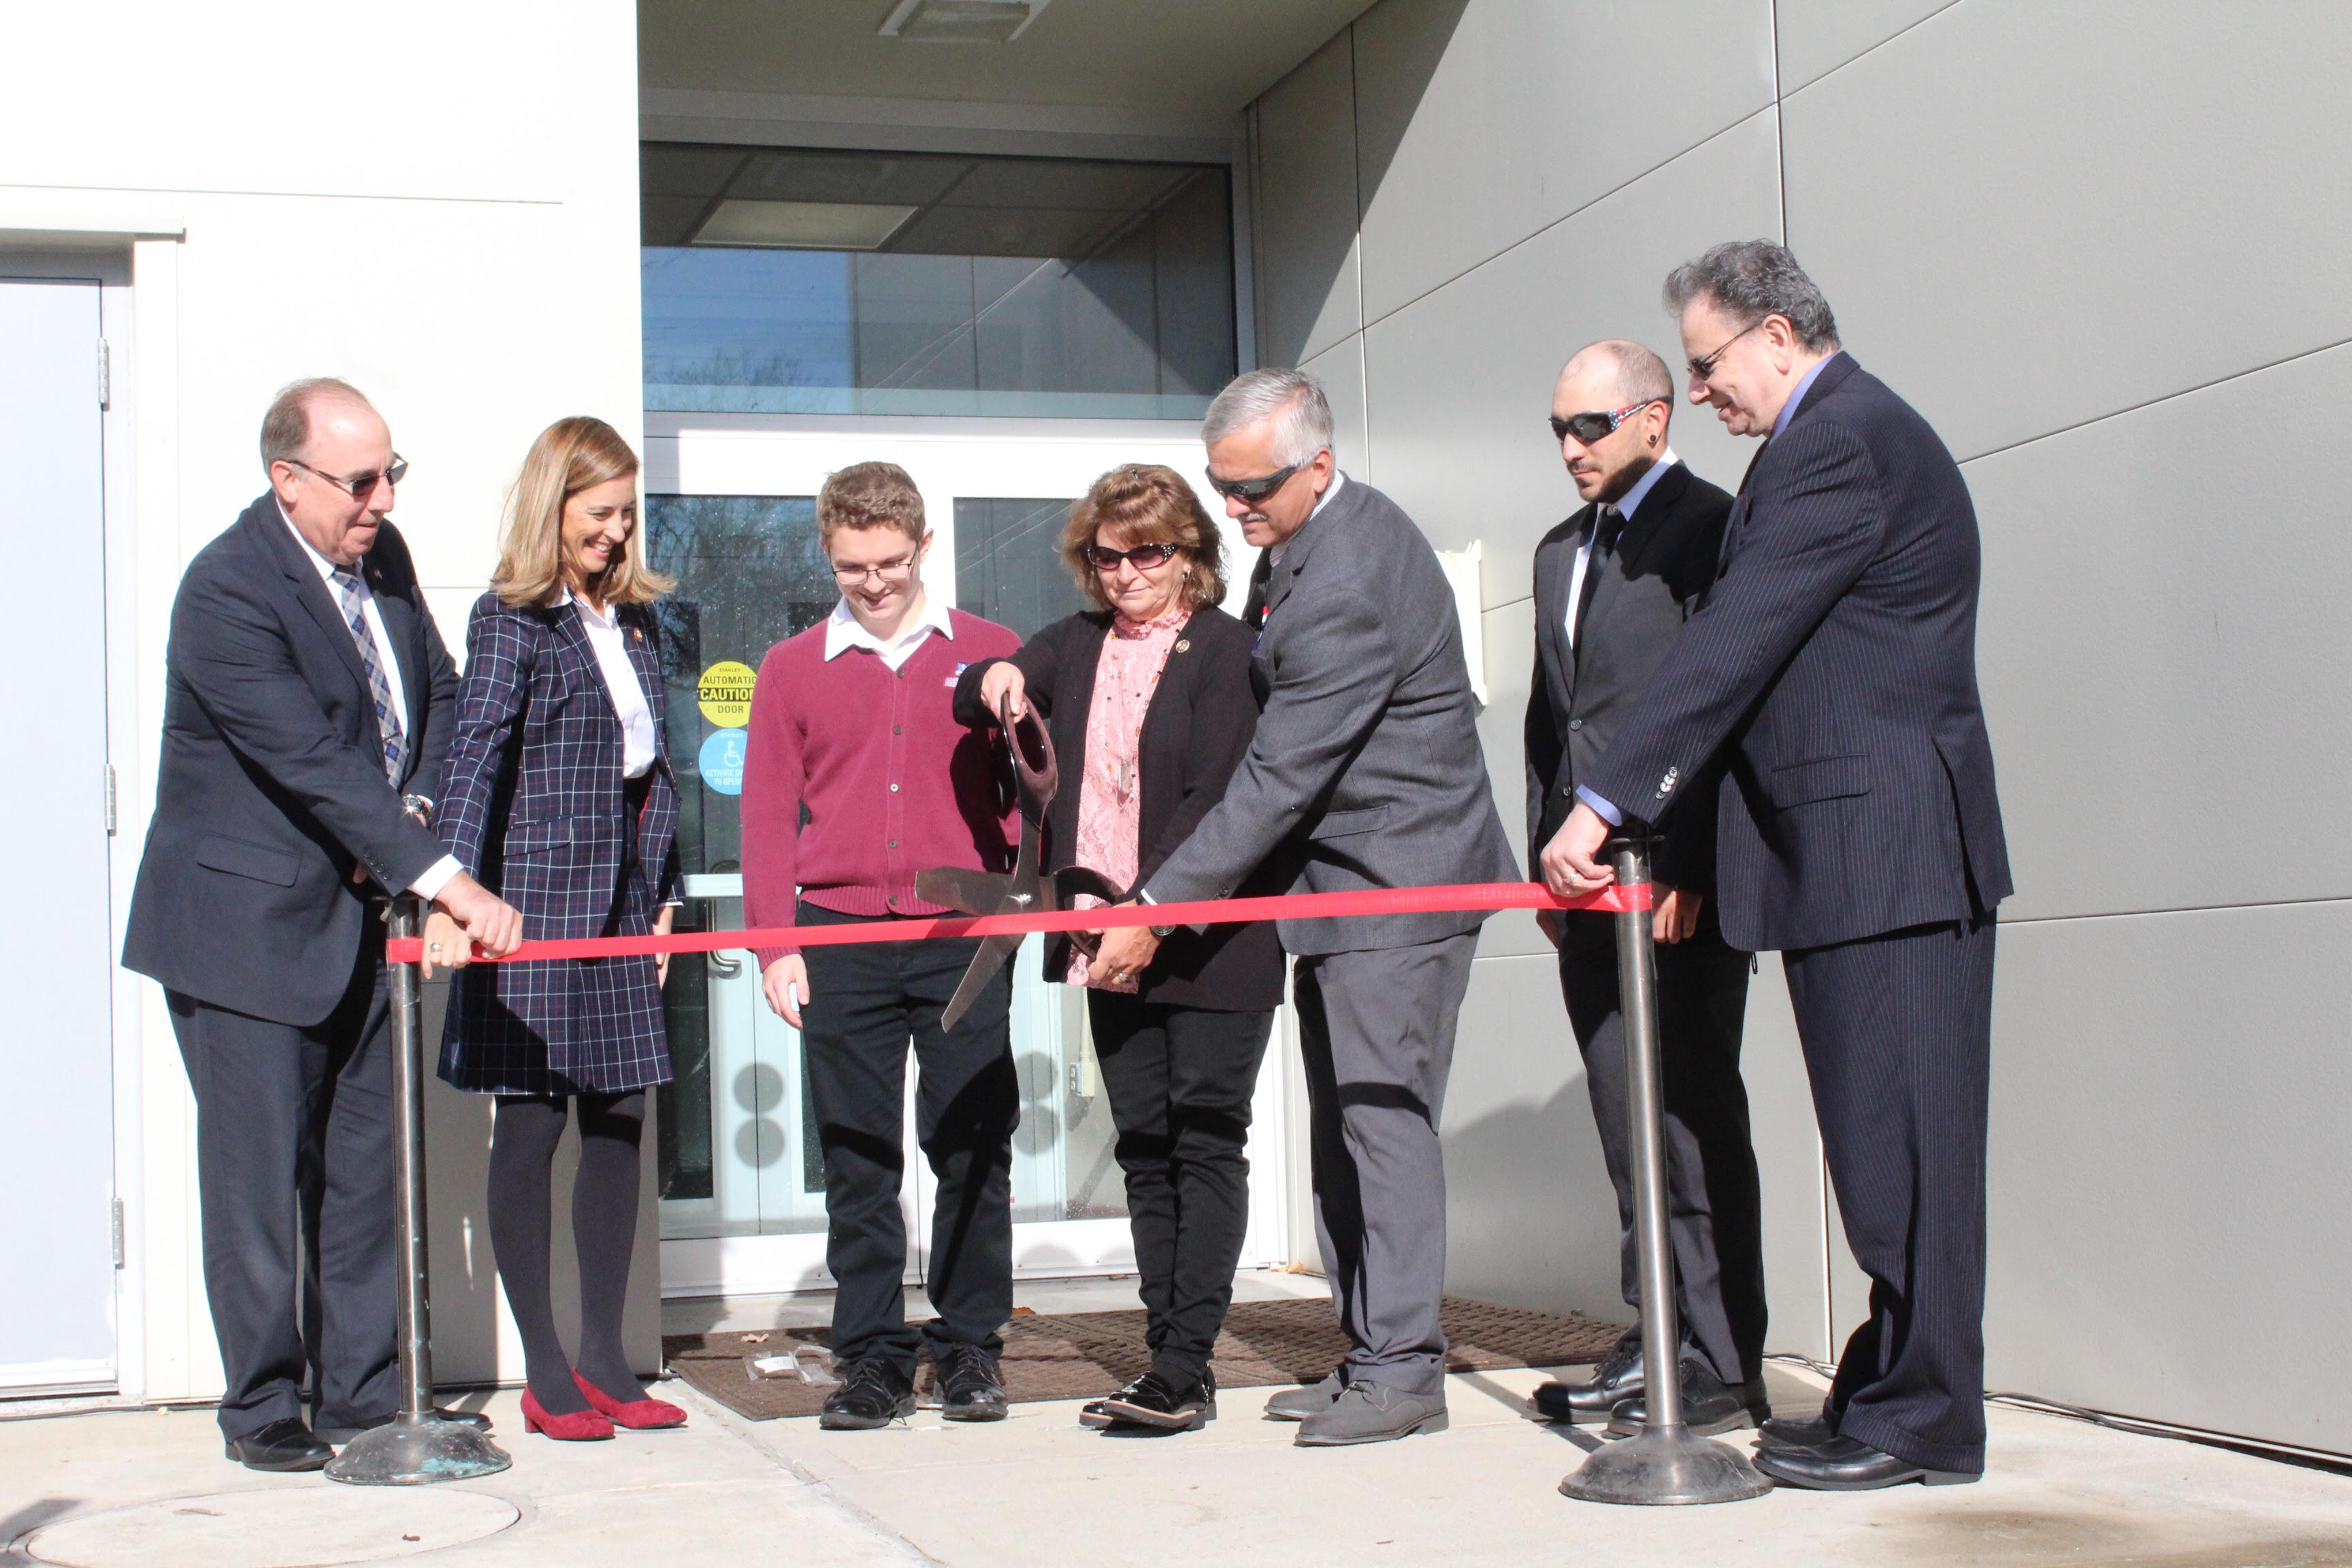 Hopatcong Councilwoman Dawn Roberts, Sgt. Kirspel's mother, cuts the ribbon for the Ballistic Evaluation Center at Picatinny Arsenal